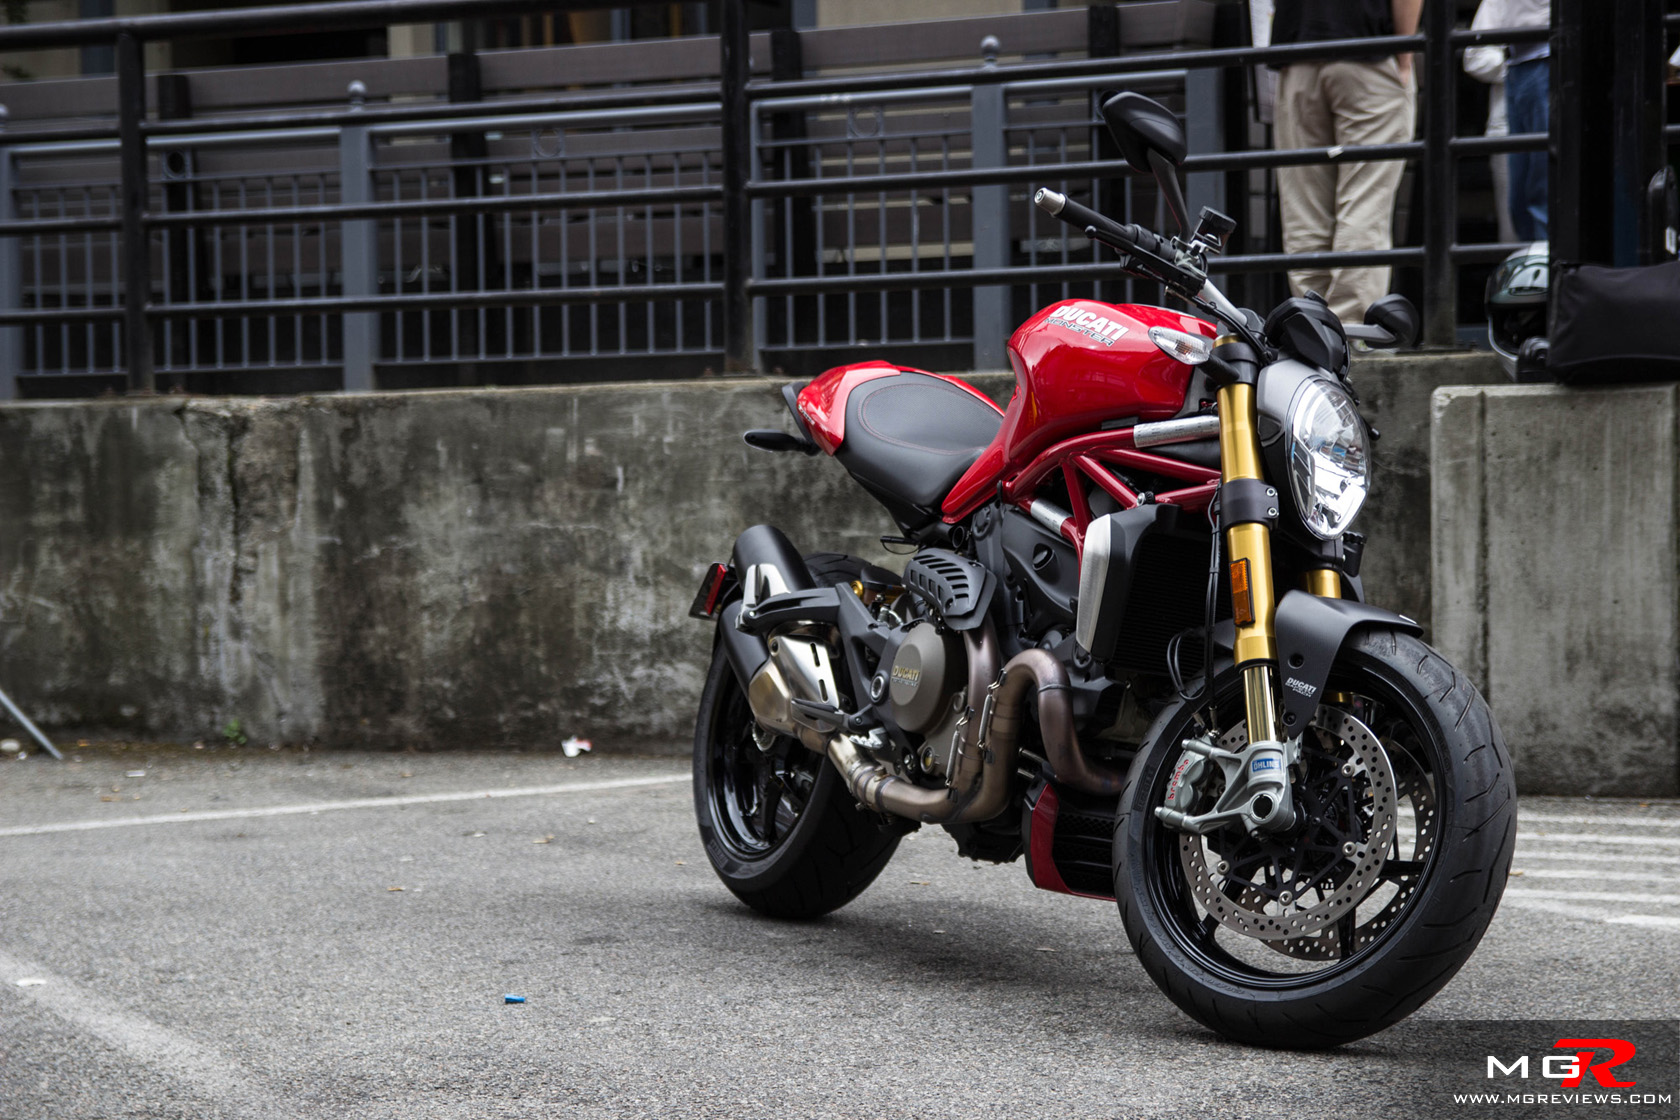 New Ducati Monster with a liquid cooled 150hp motor